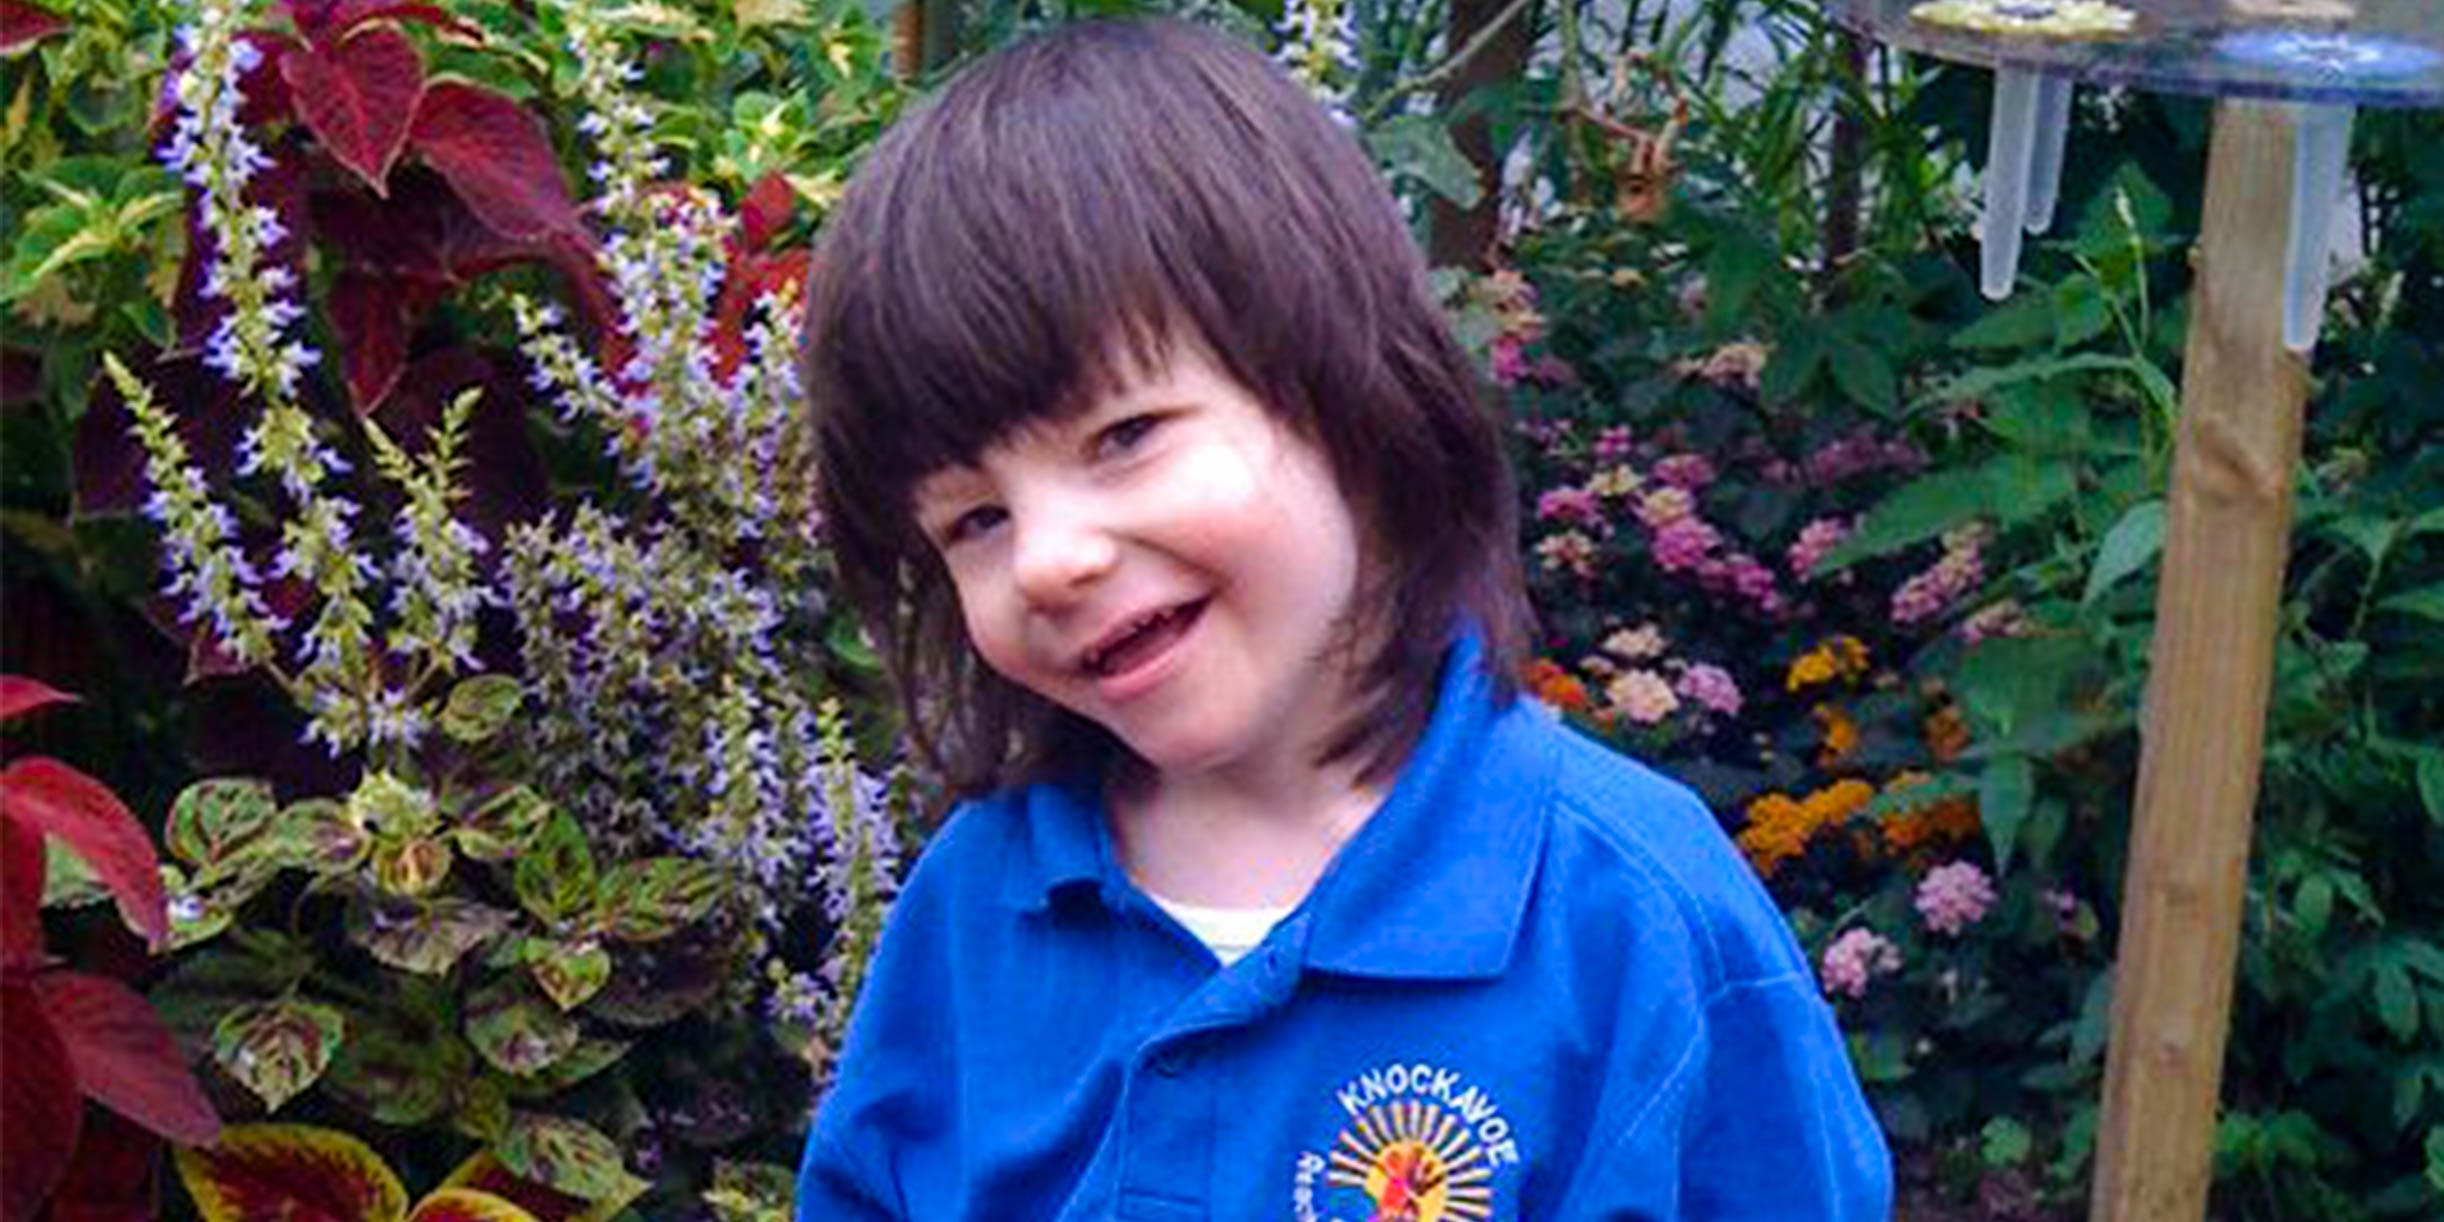 The UK Changes Its Mind About Allowing Epilepsy Patient Billy Caldwell Access To CBD